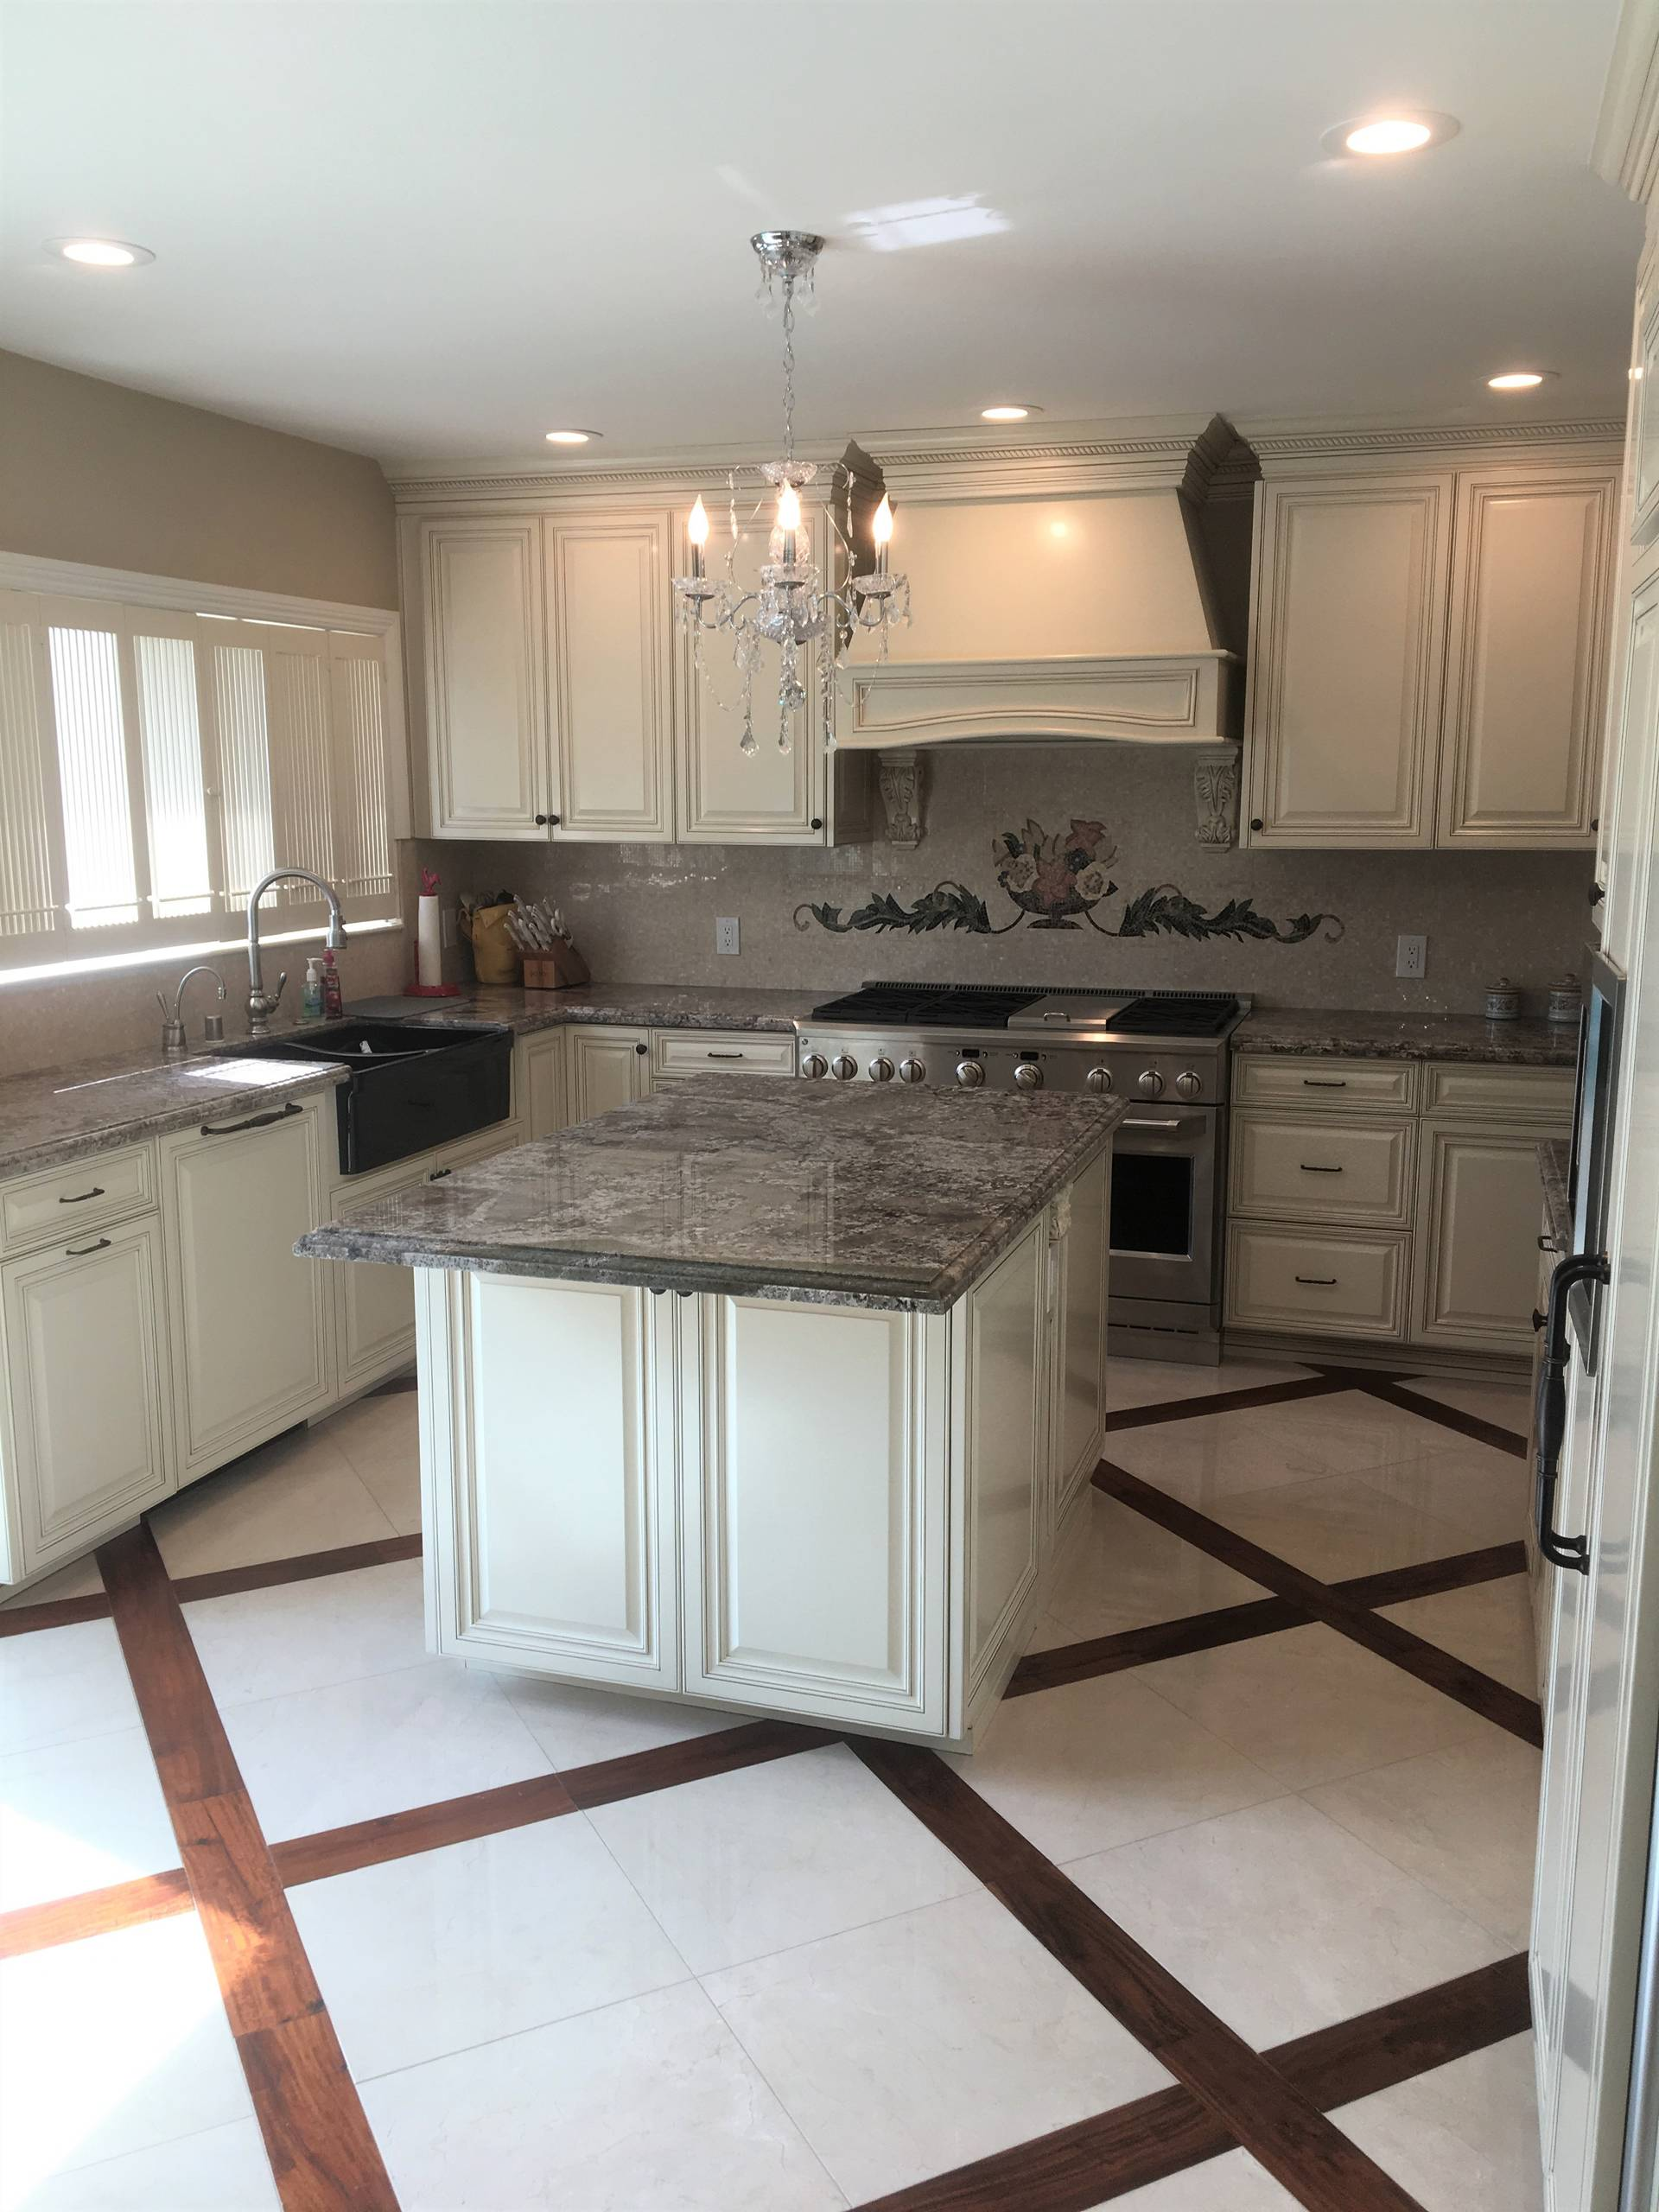 75 Beautiful Victorian Kitchen With Mosaic Tile Backsplash Pictures Ideas January 2021 Houzz